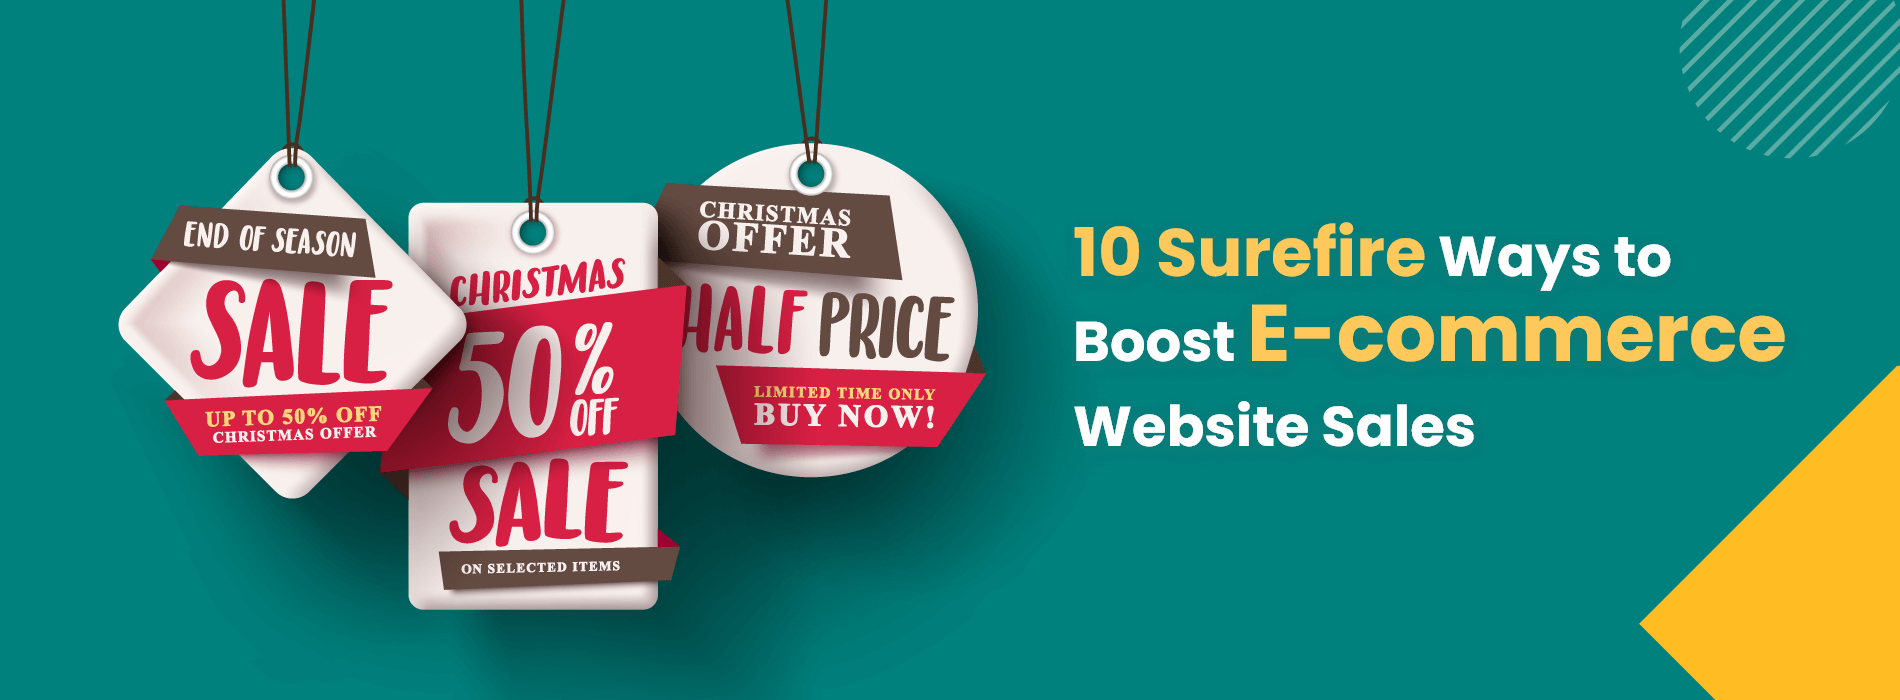 10 Surefire Ways to Boost E-commerce Website Sales